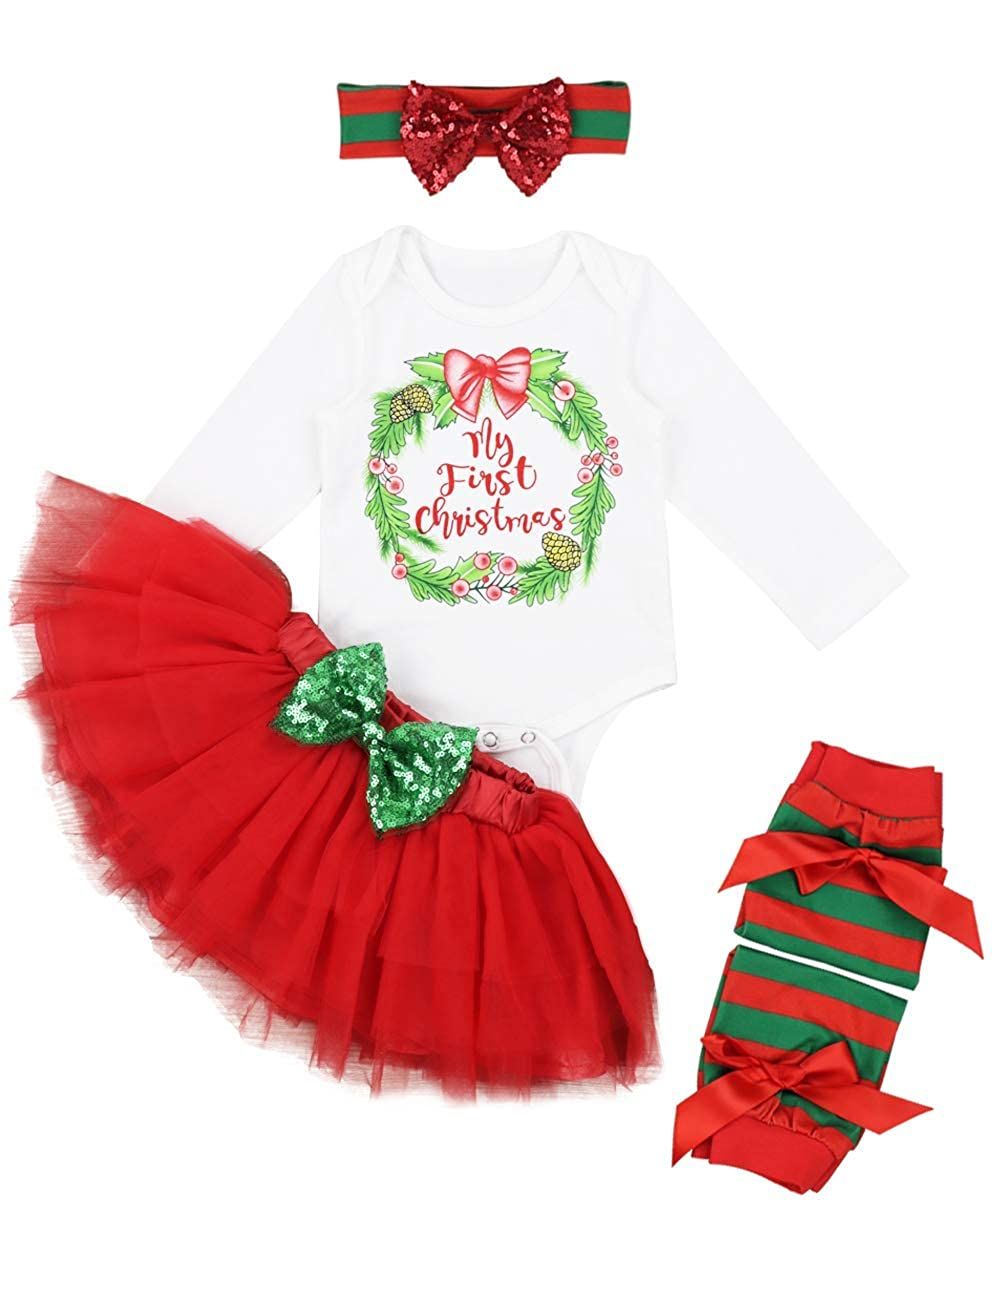 4197fec7d Amazon.com  My First Christmas Baby Girls Clothes Long Sleeve ...